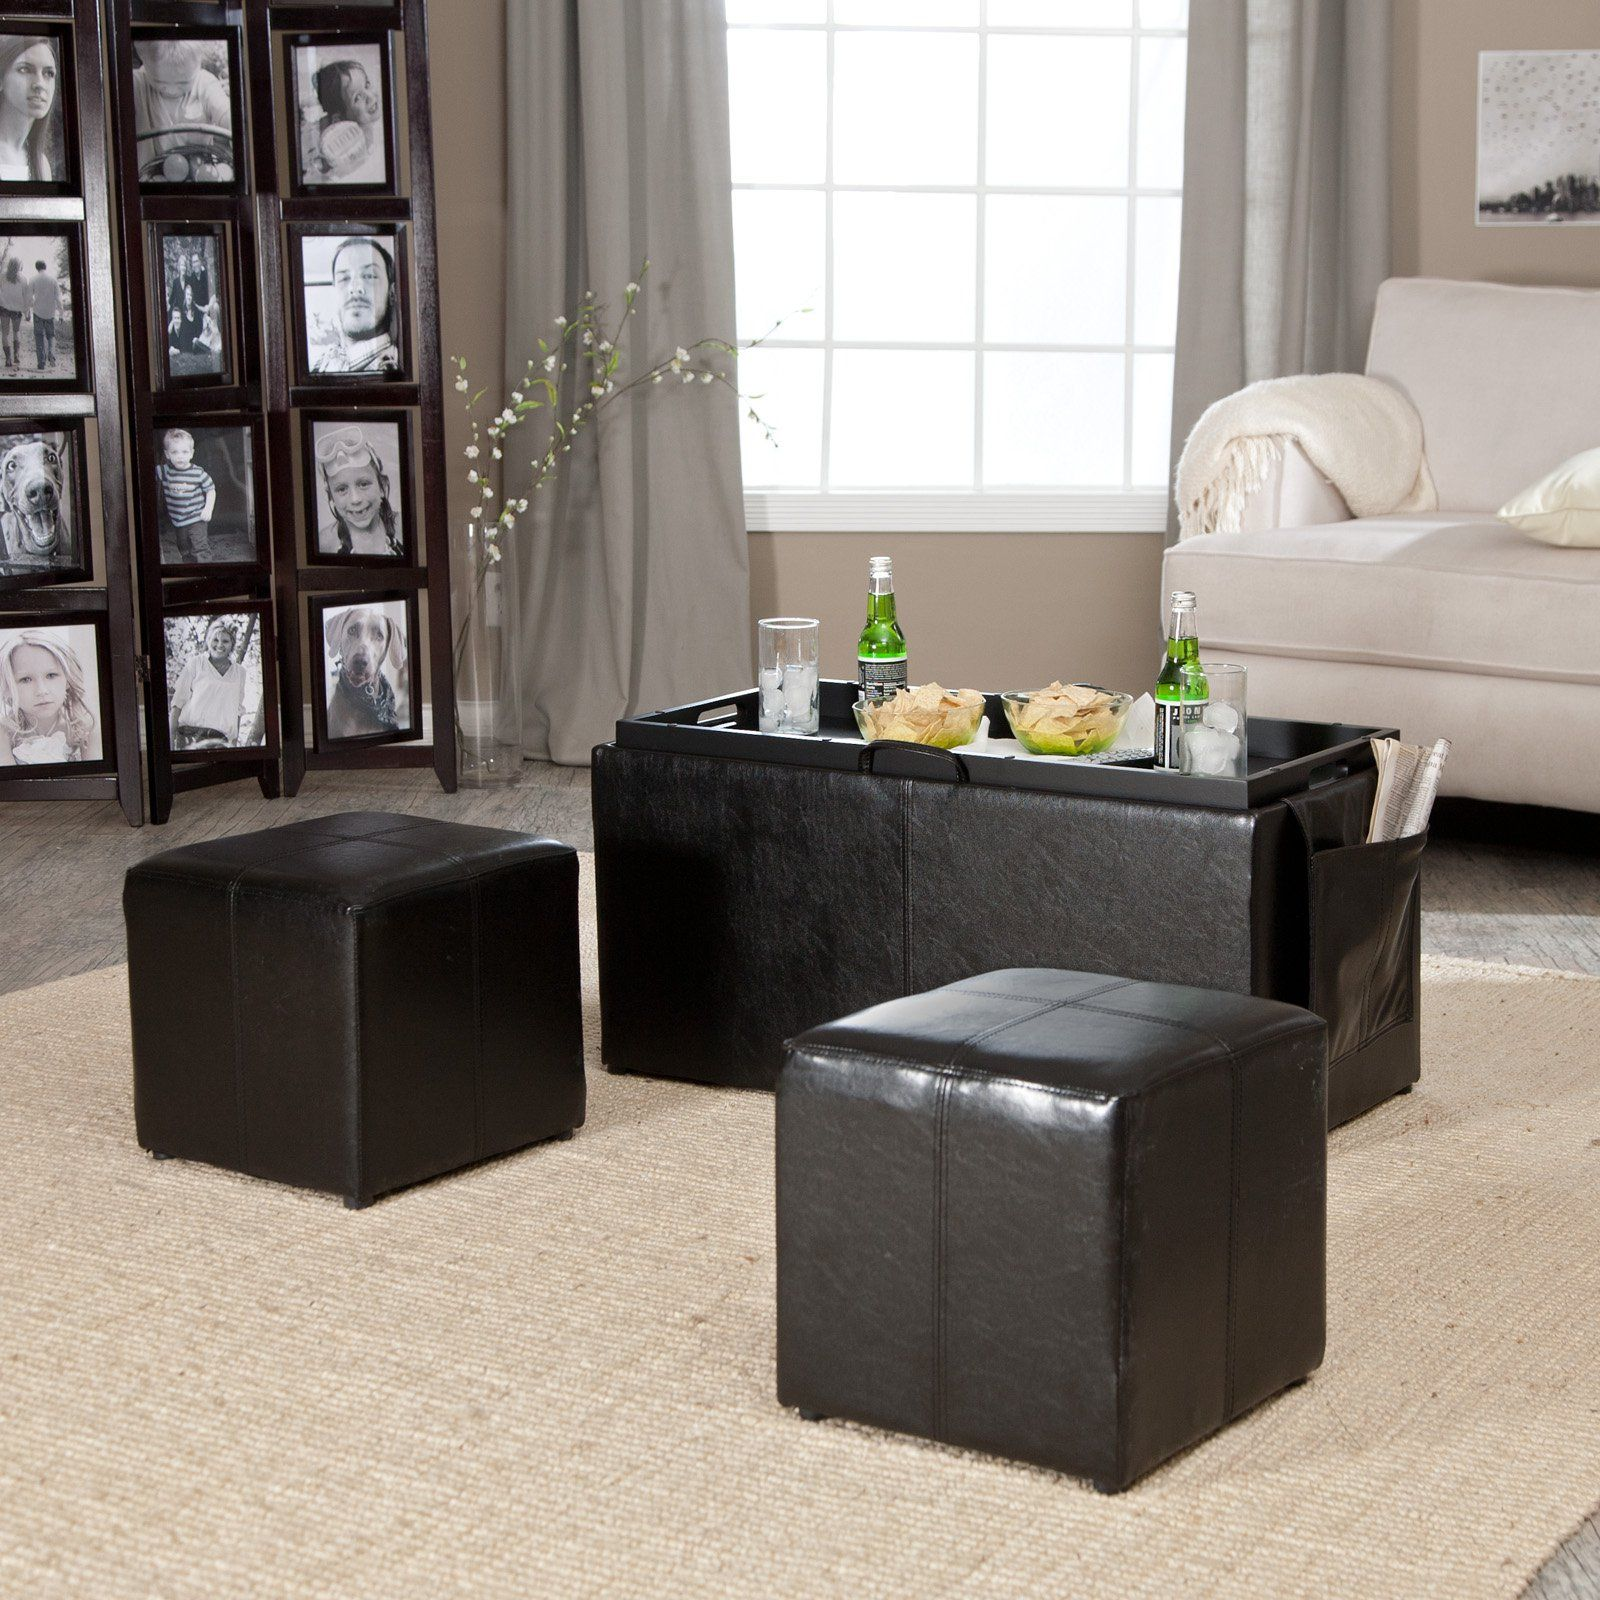 Double Ottoman Coffee Table 11